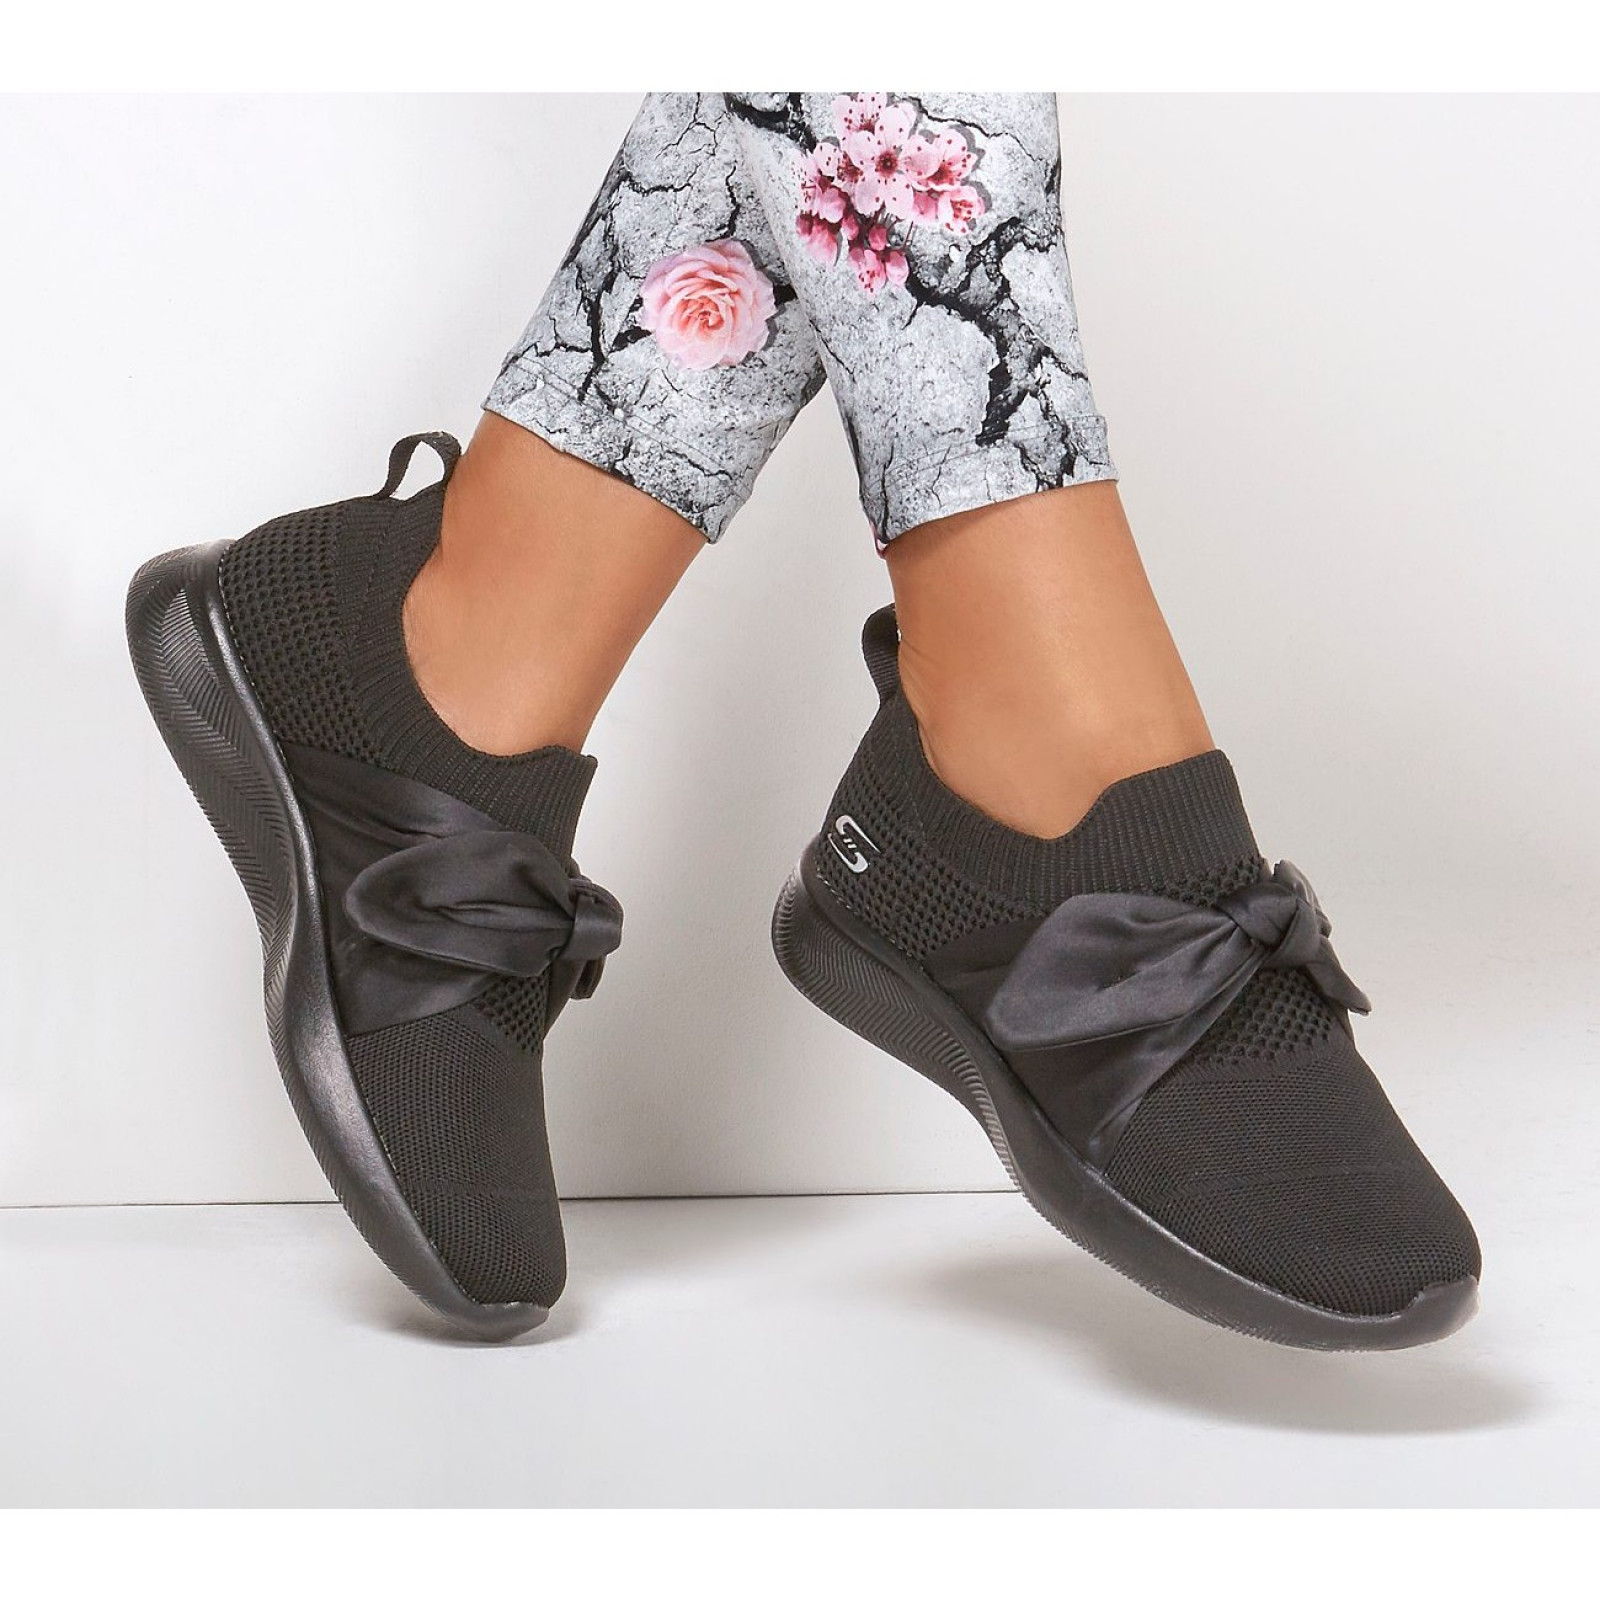 34 40 női cipő Skechers Bobs Squad Bow Beauty D.D.step